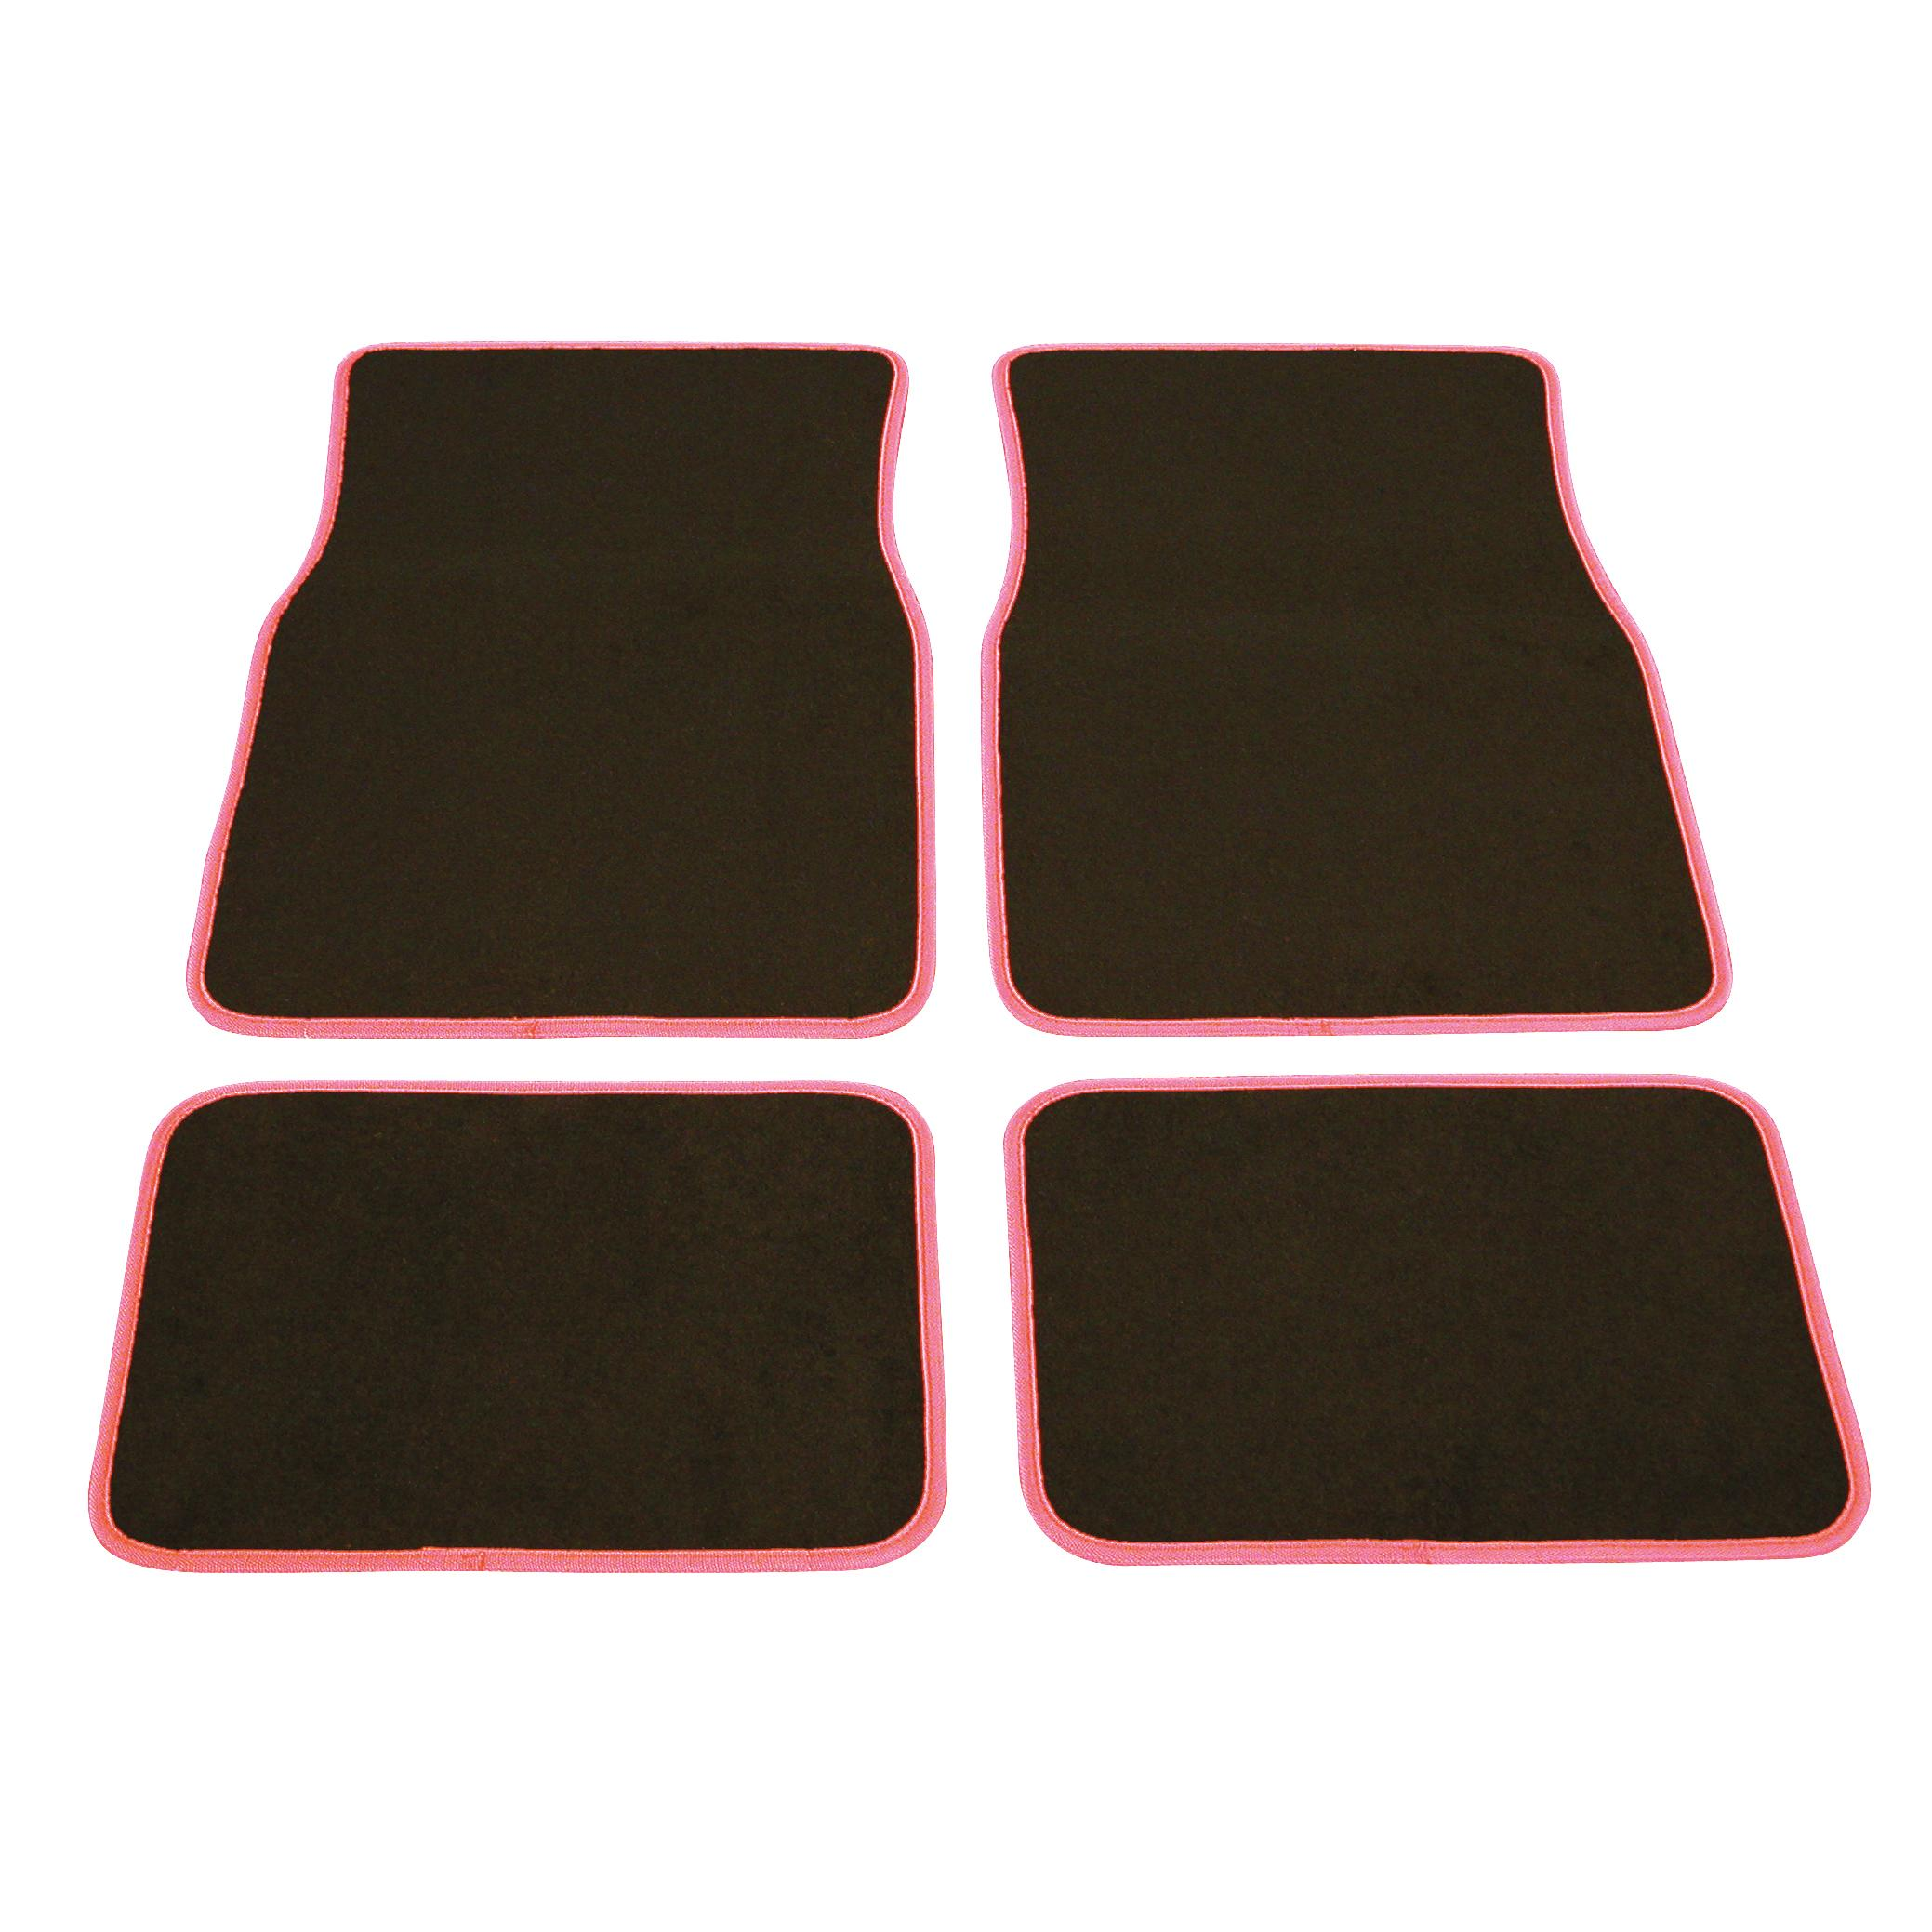 tapis universels adnautomid tapis de sol uni pi 217406. Black Bedroom Furniture Sets. Home Design Ideas